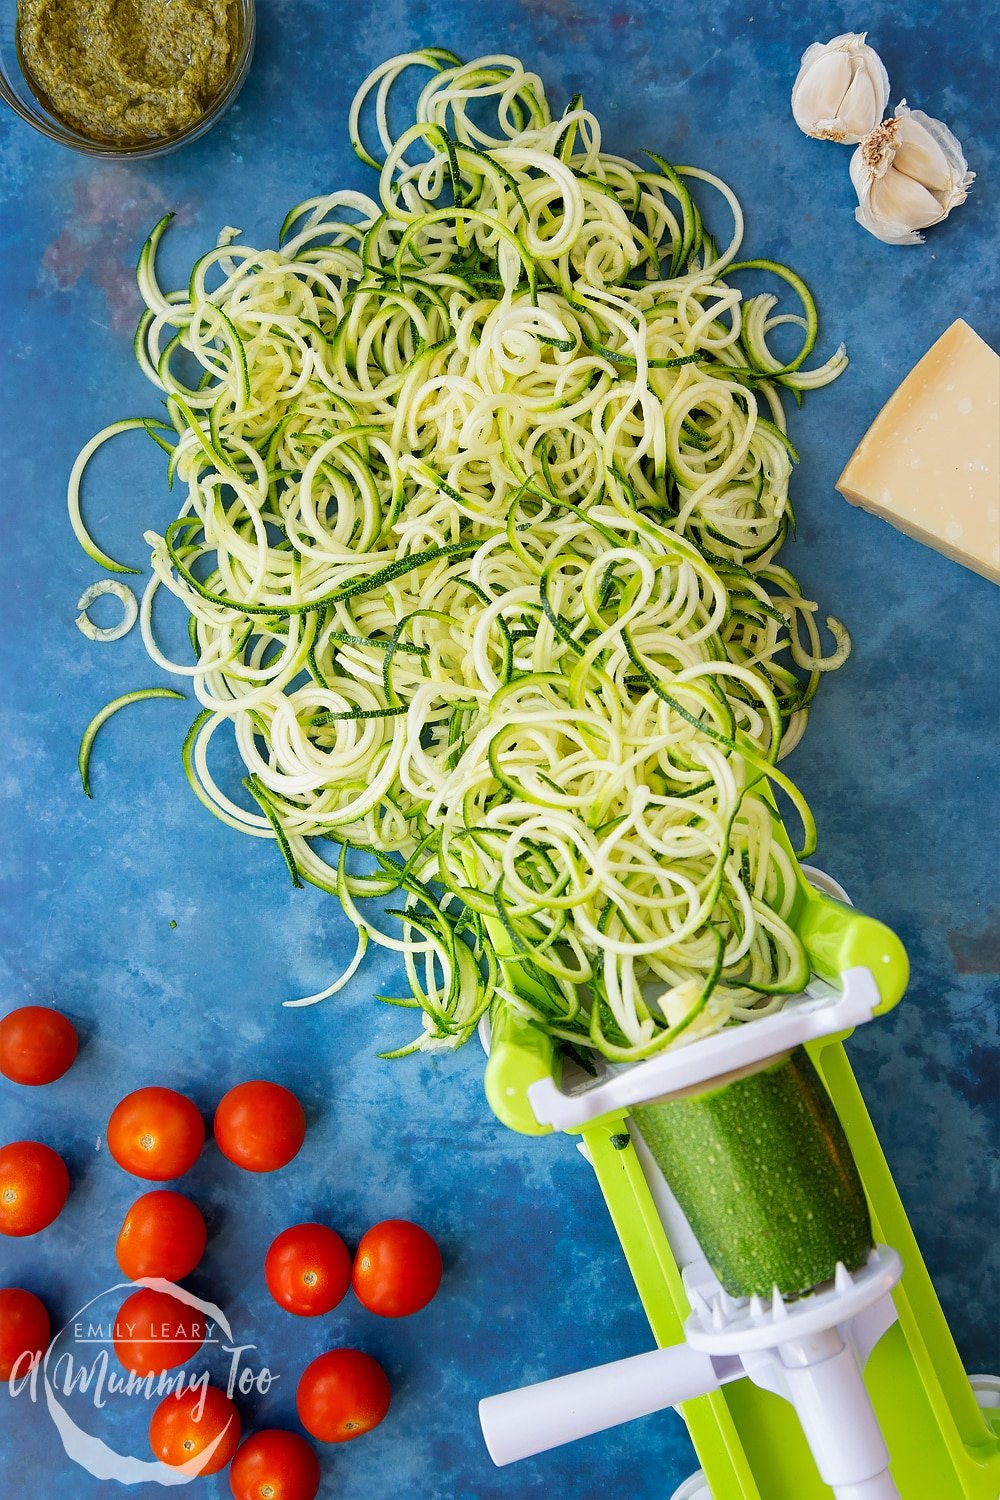 Spiralised courgette coming out of a spiraliser, surrounded by tomatoes, pesto, garlic and Parmesan